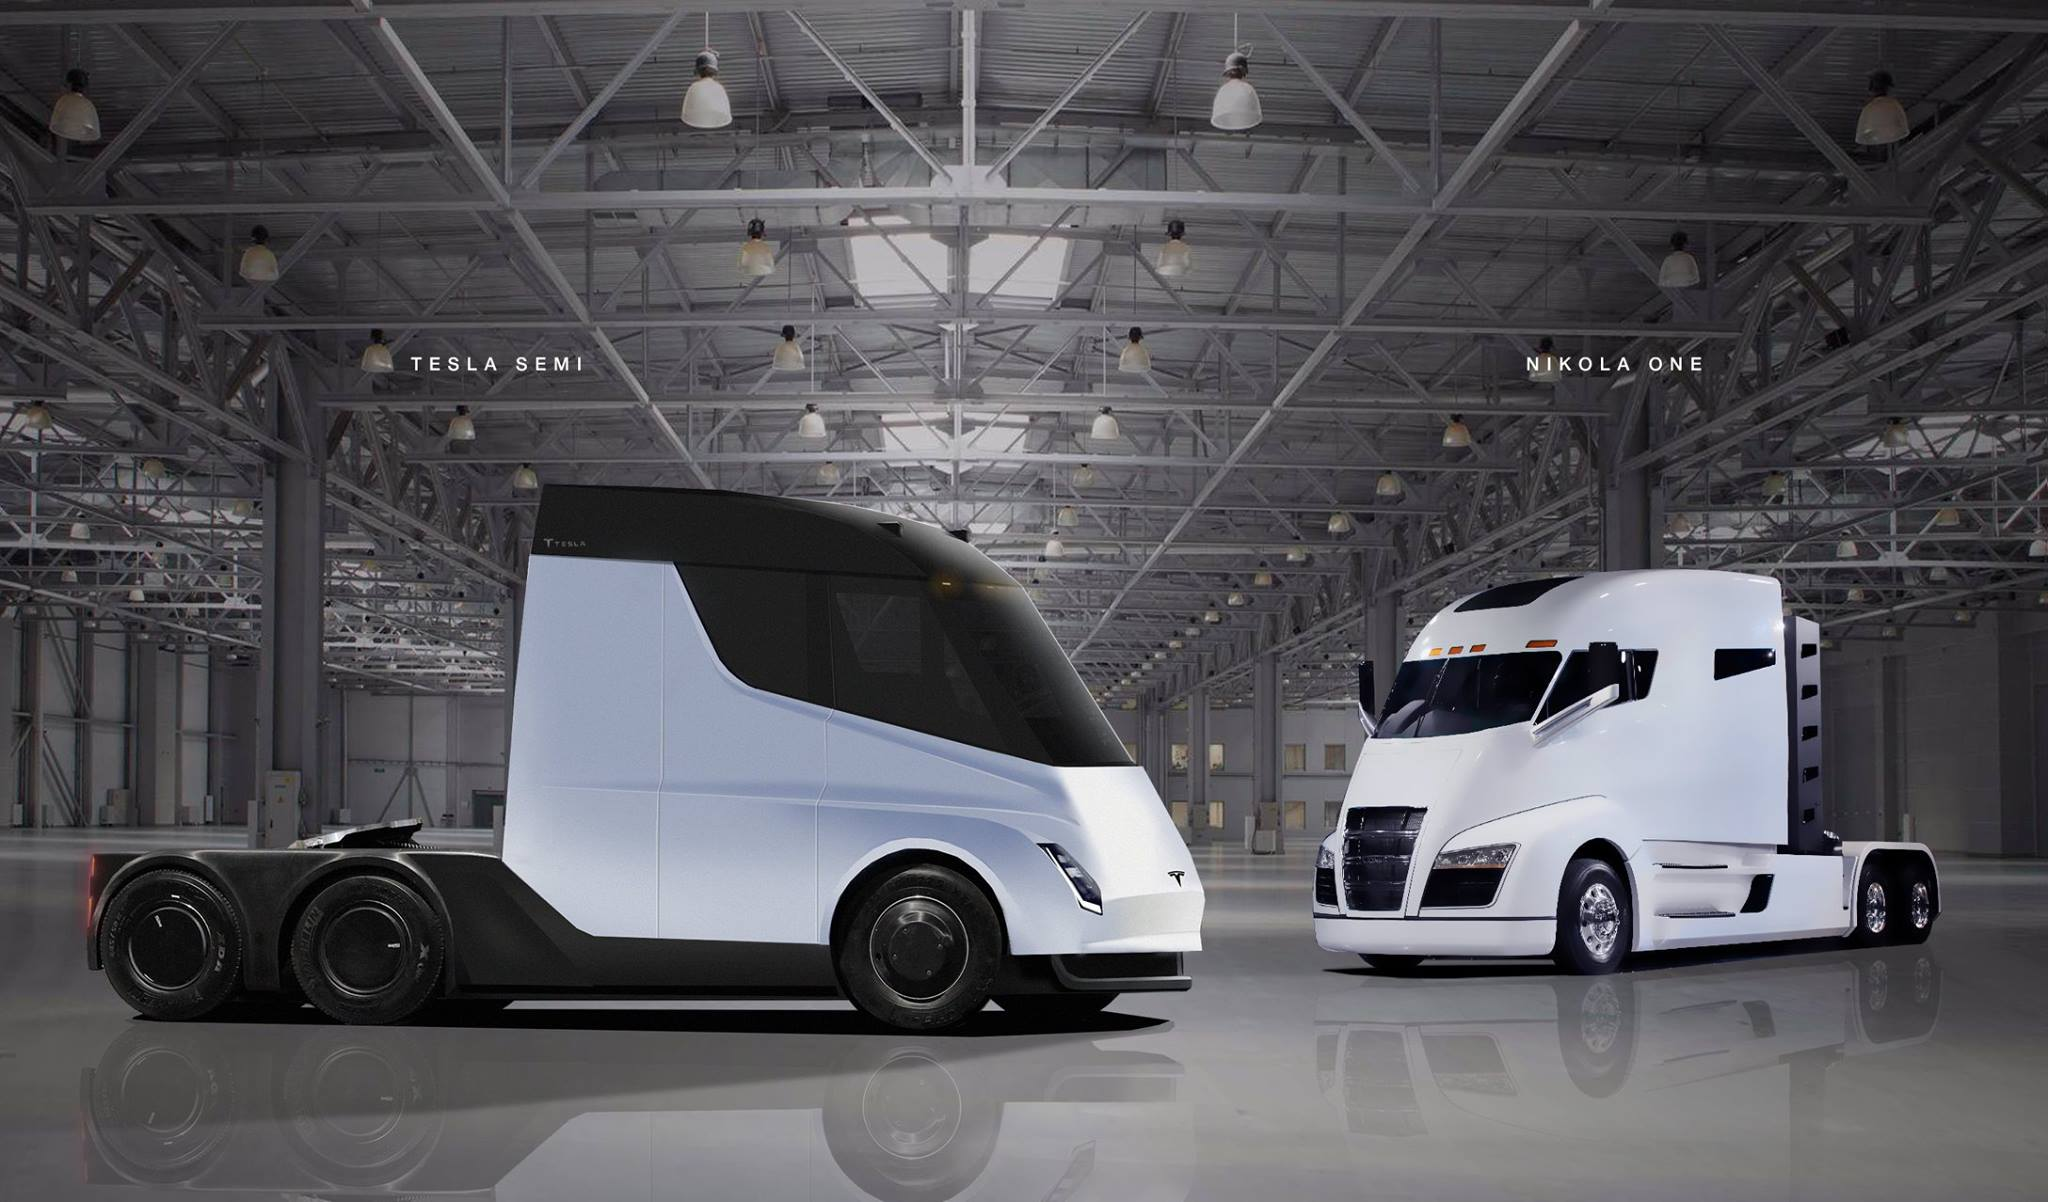 Tesla Semi Truck With Crew Cabin Brought To Life In Latest